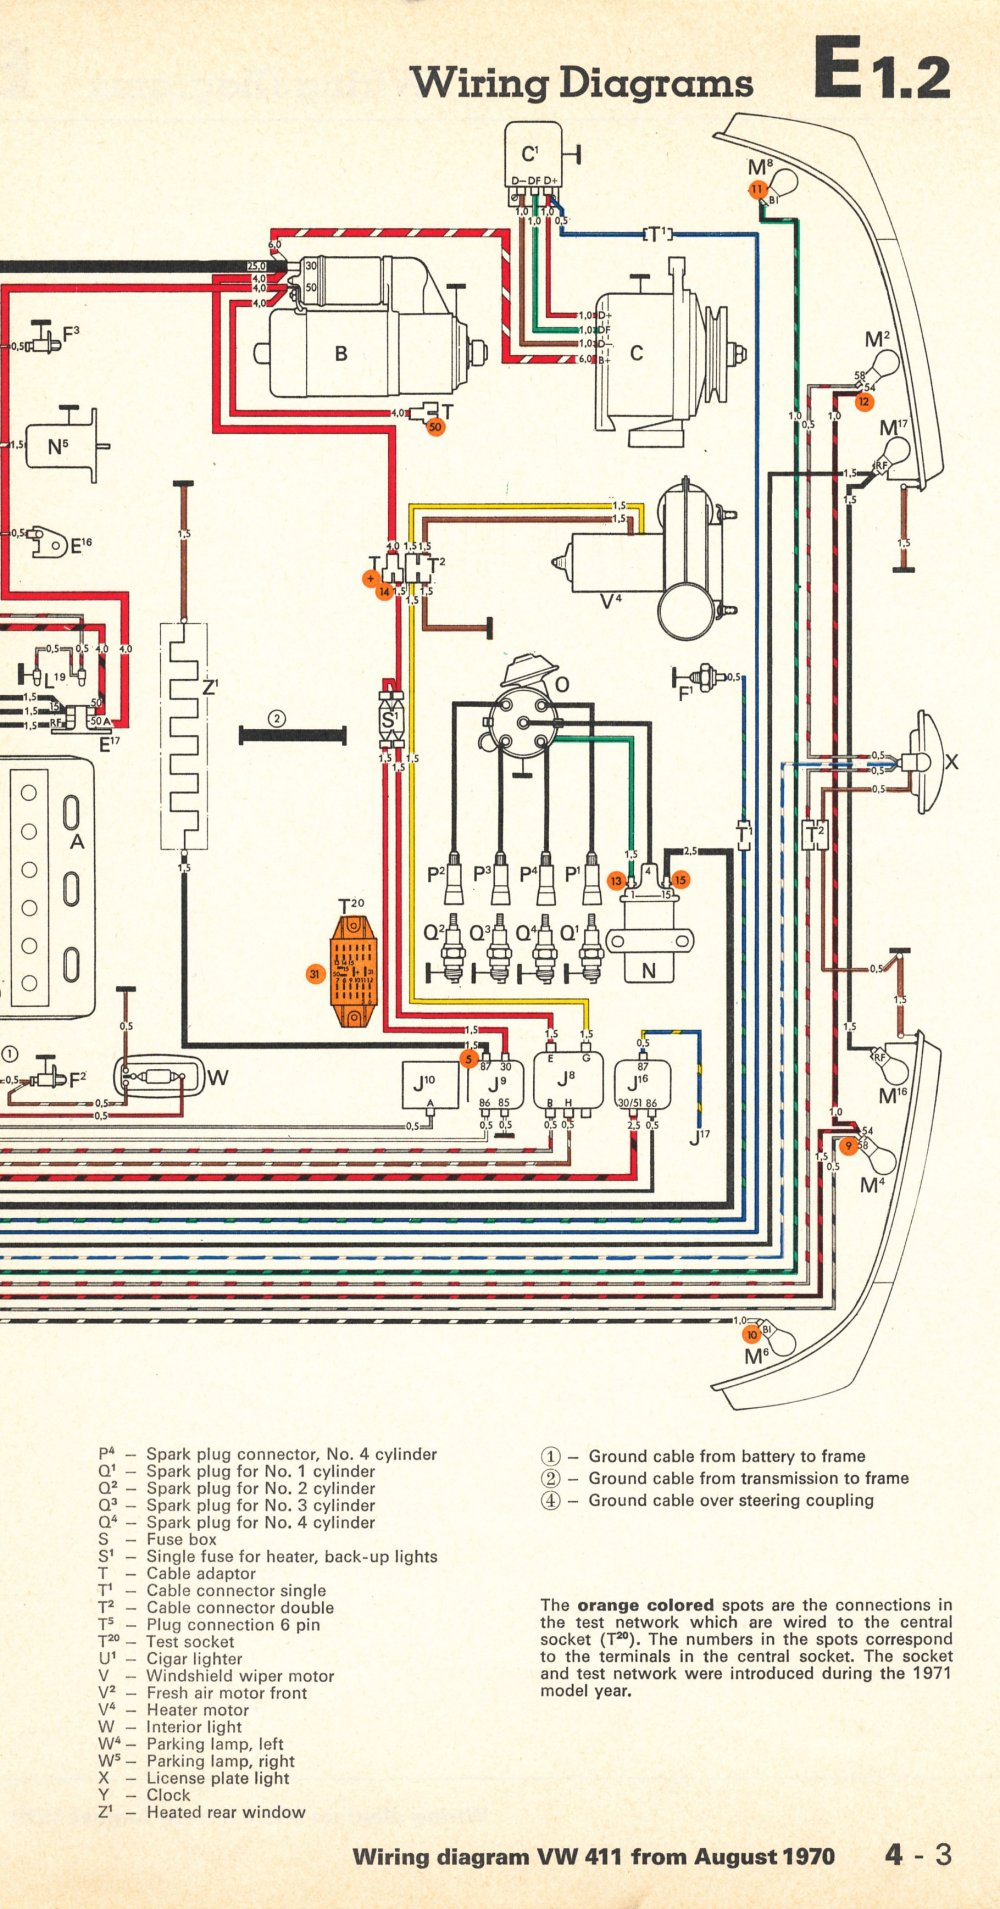 medium resolution of ti jaguar frc wiring diagram frc pneumatics diagram wiring frc robot wiring frc robotics